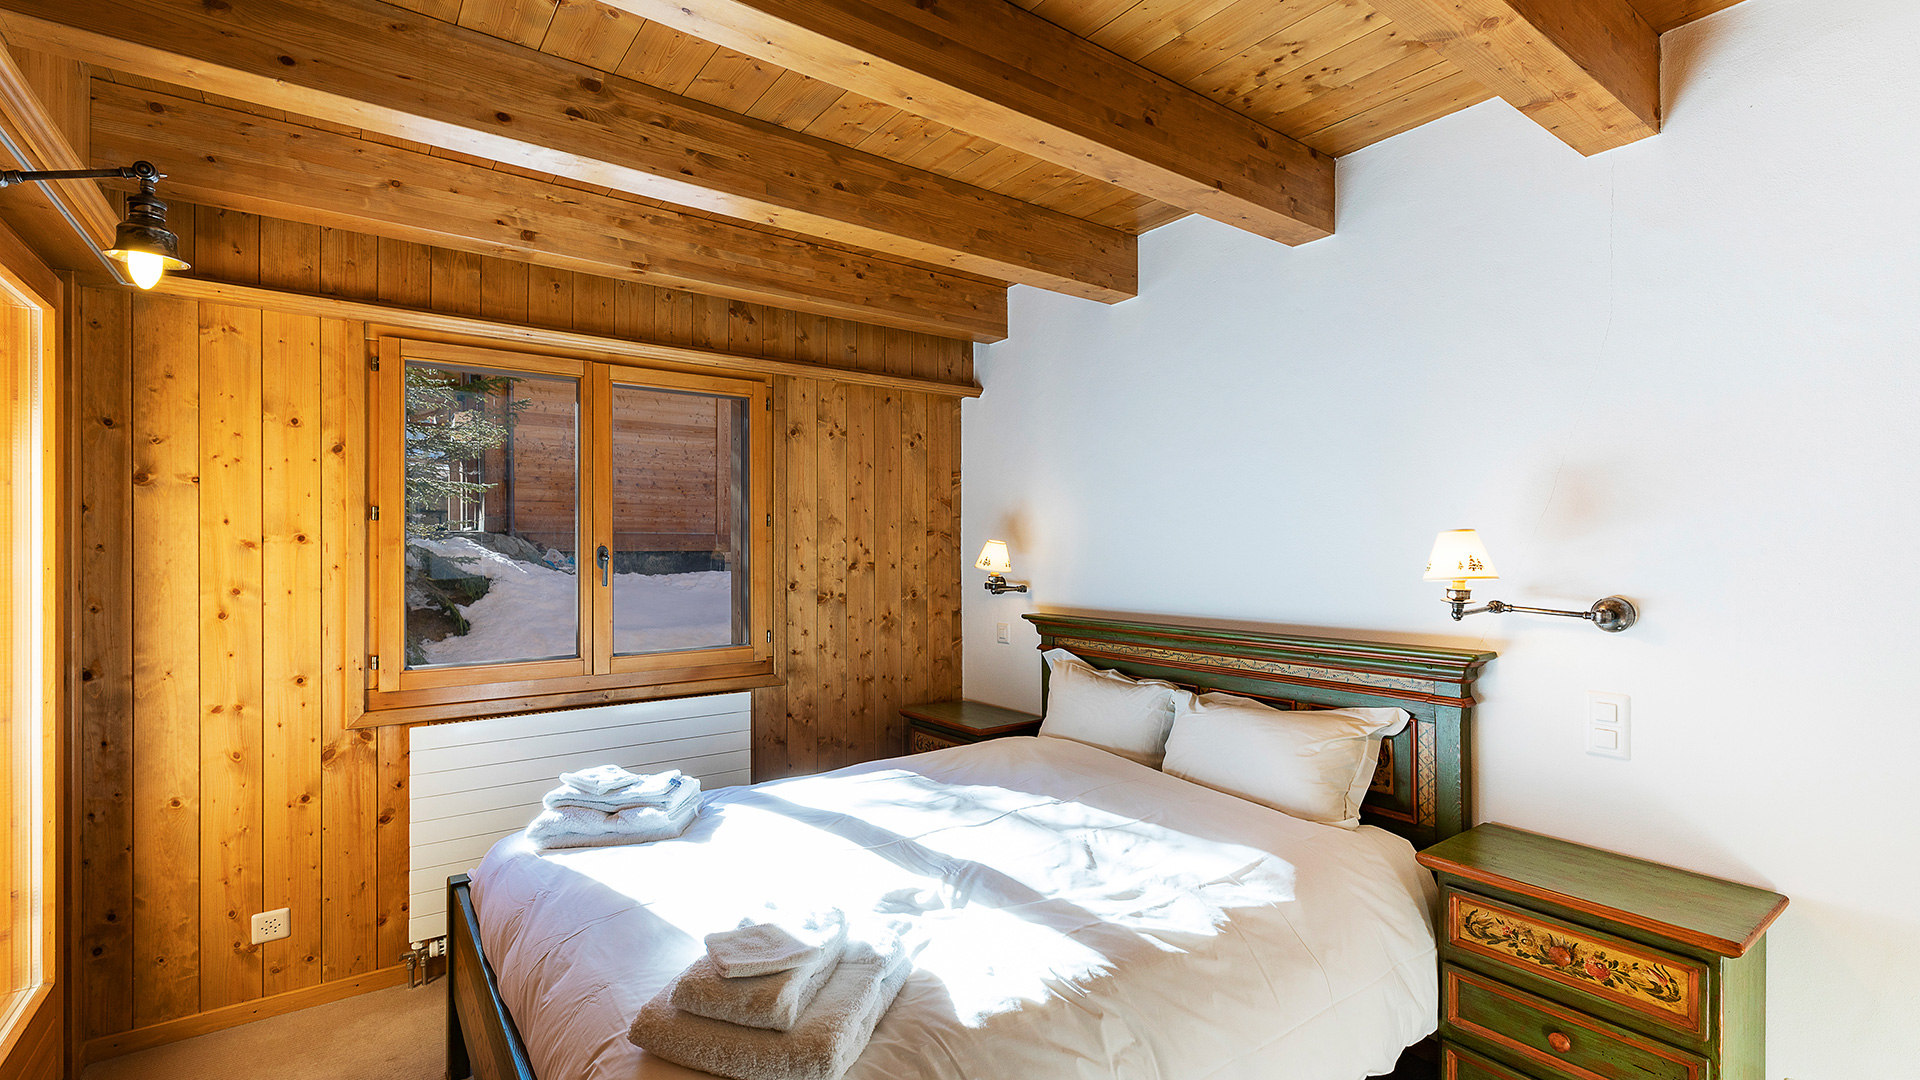 Alrou 114 Apartments, Switzerland